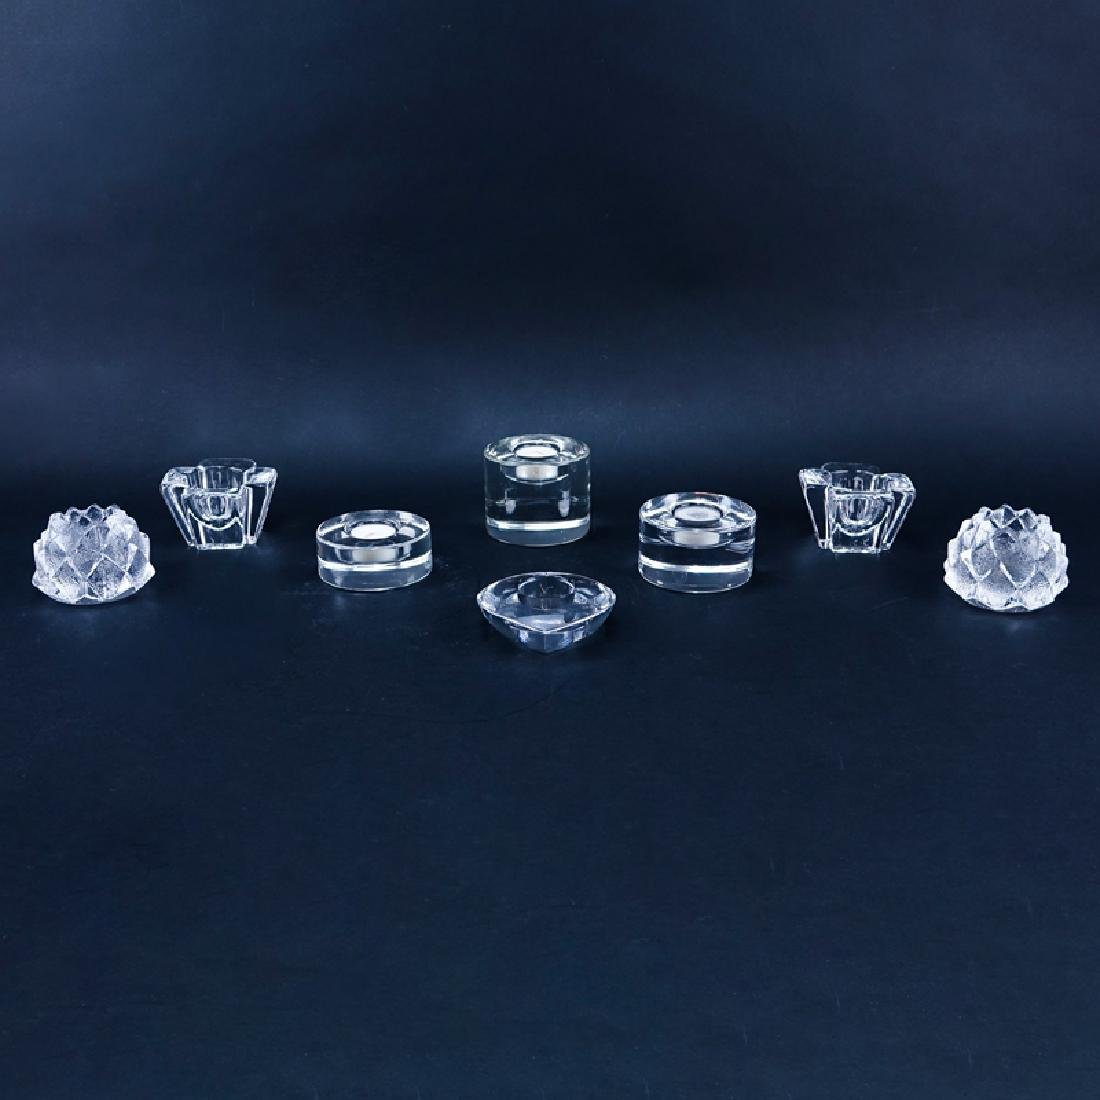 Collection of Eight (8) Orrefors Crystal Candle Holders